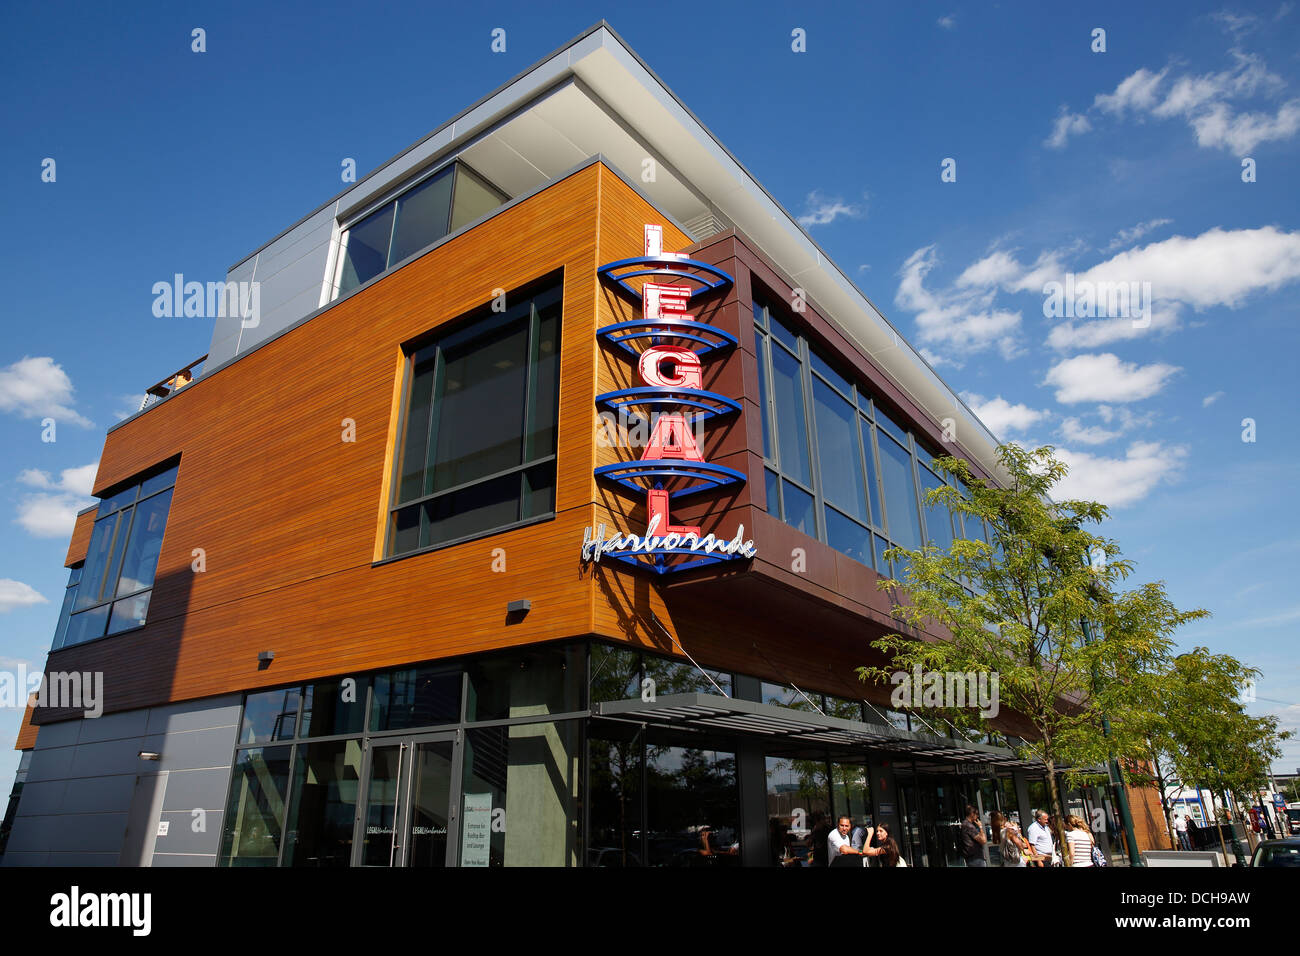 Legal Seafoods restaurant on Liberty Wharf in the Seaport District, Boston, Massachusetts - Stock Image